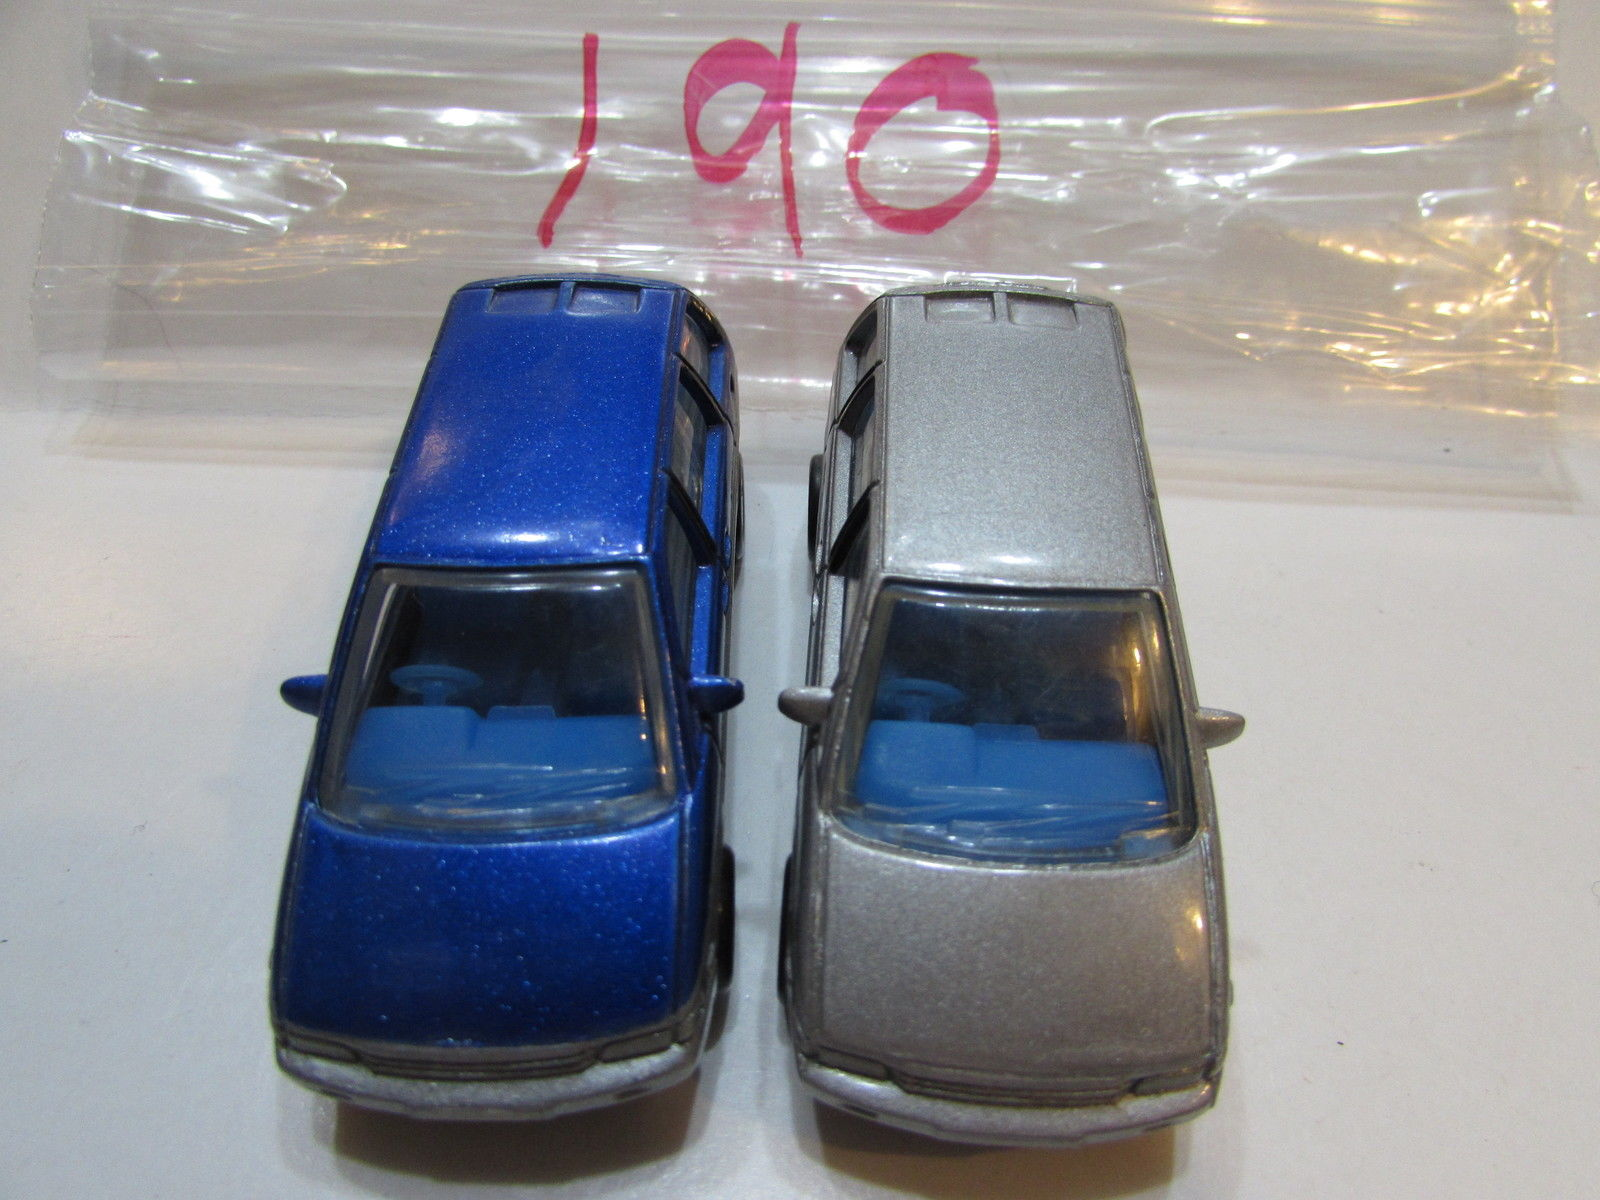 MATCHBOX LOT OF 2 LOOSE NISSAN PRAIRIE SCALE 1:59 1990 BLUE - SILVER